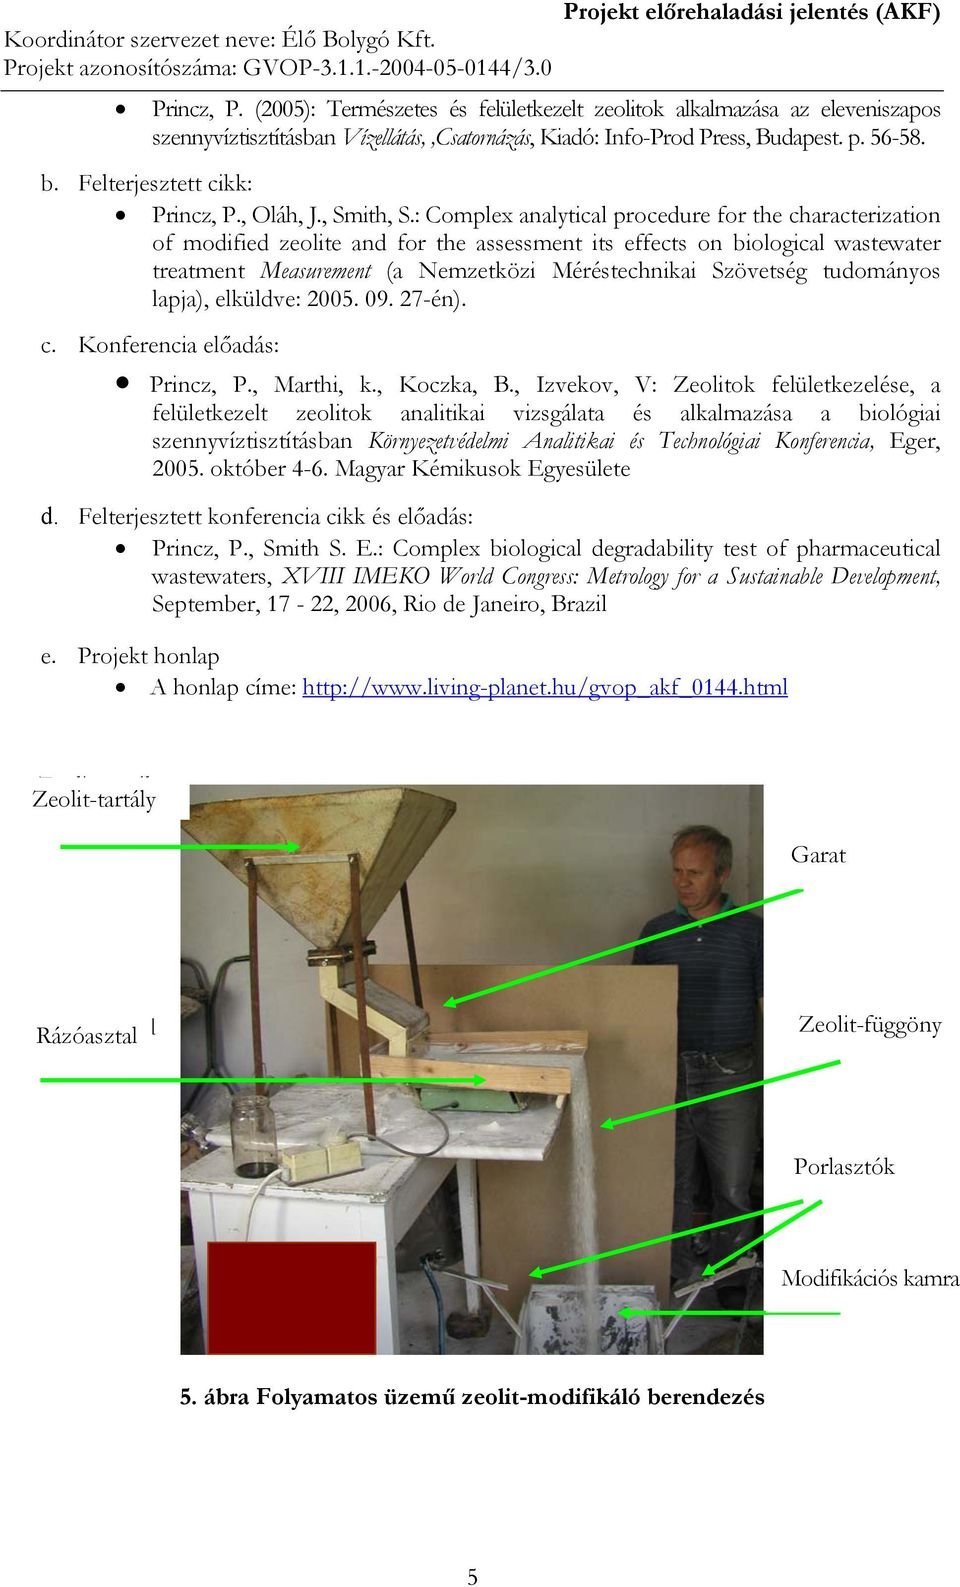 : Complex analytical procedure for the characterization of modified zeolite and for the assessment its effects on biological wastewater treatment Measurement (a Nemzetközi Méréstechnikai Szövetség